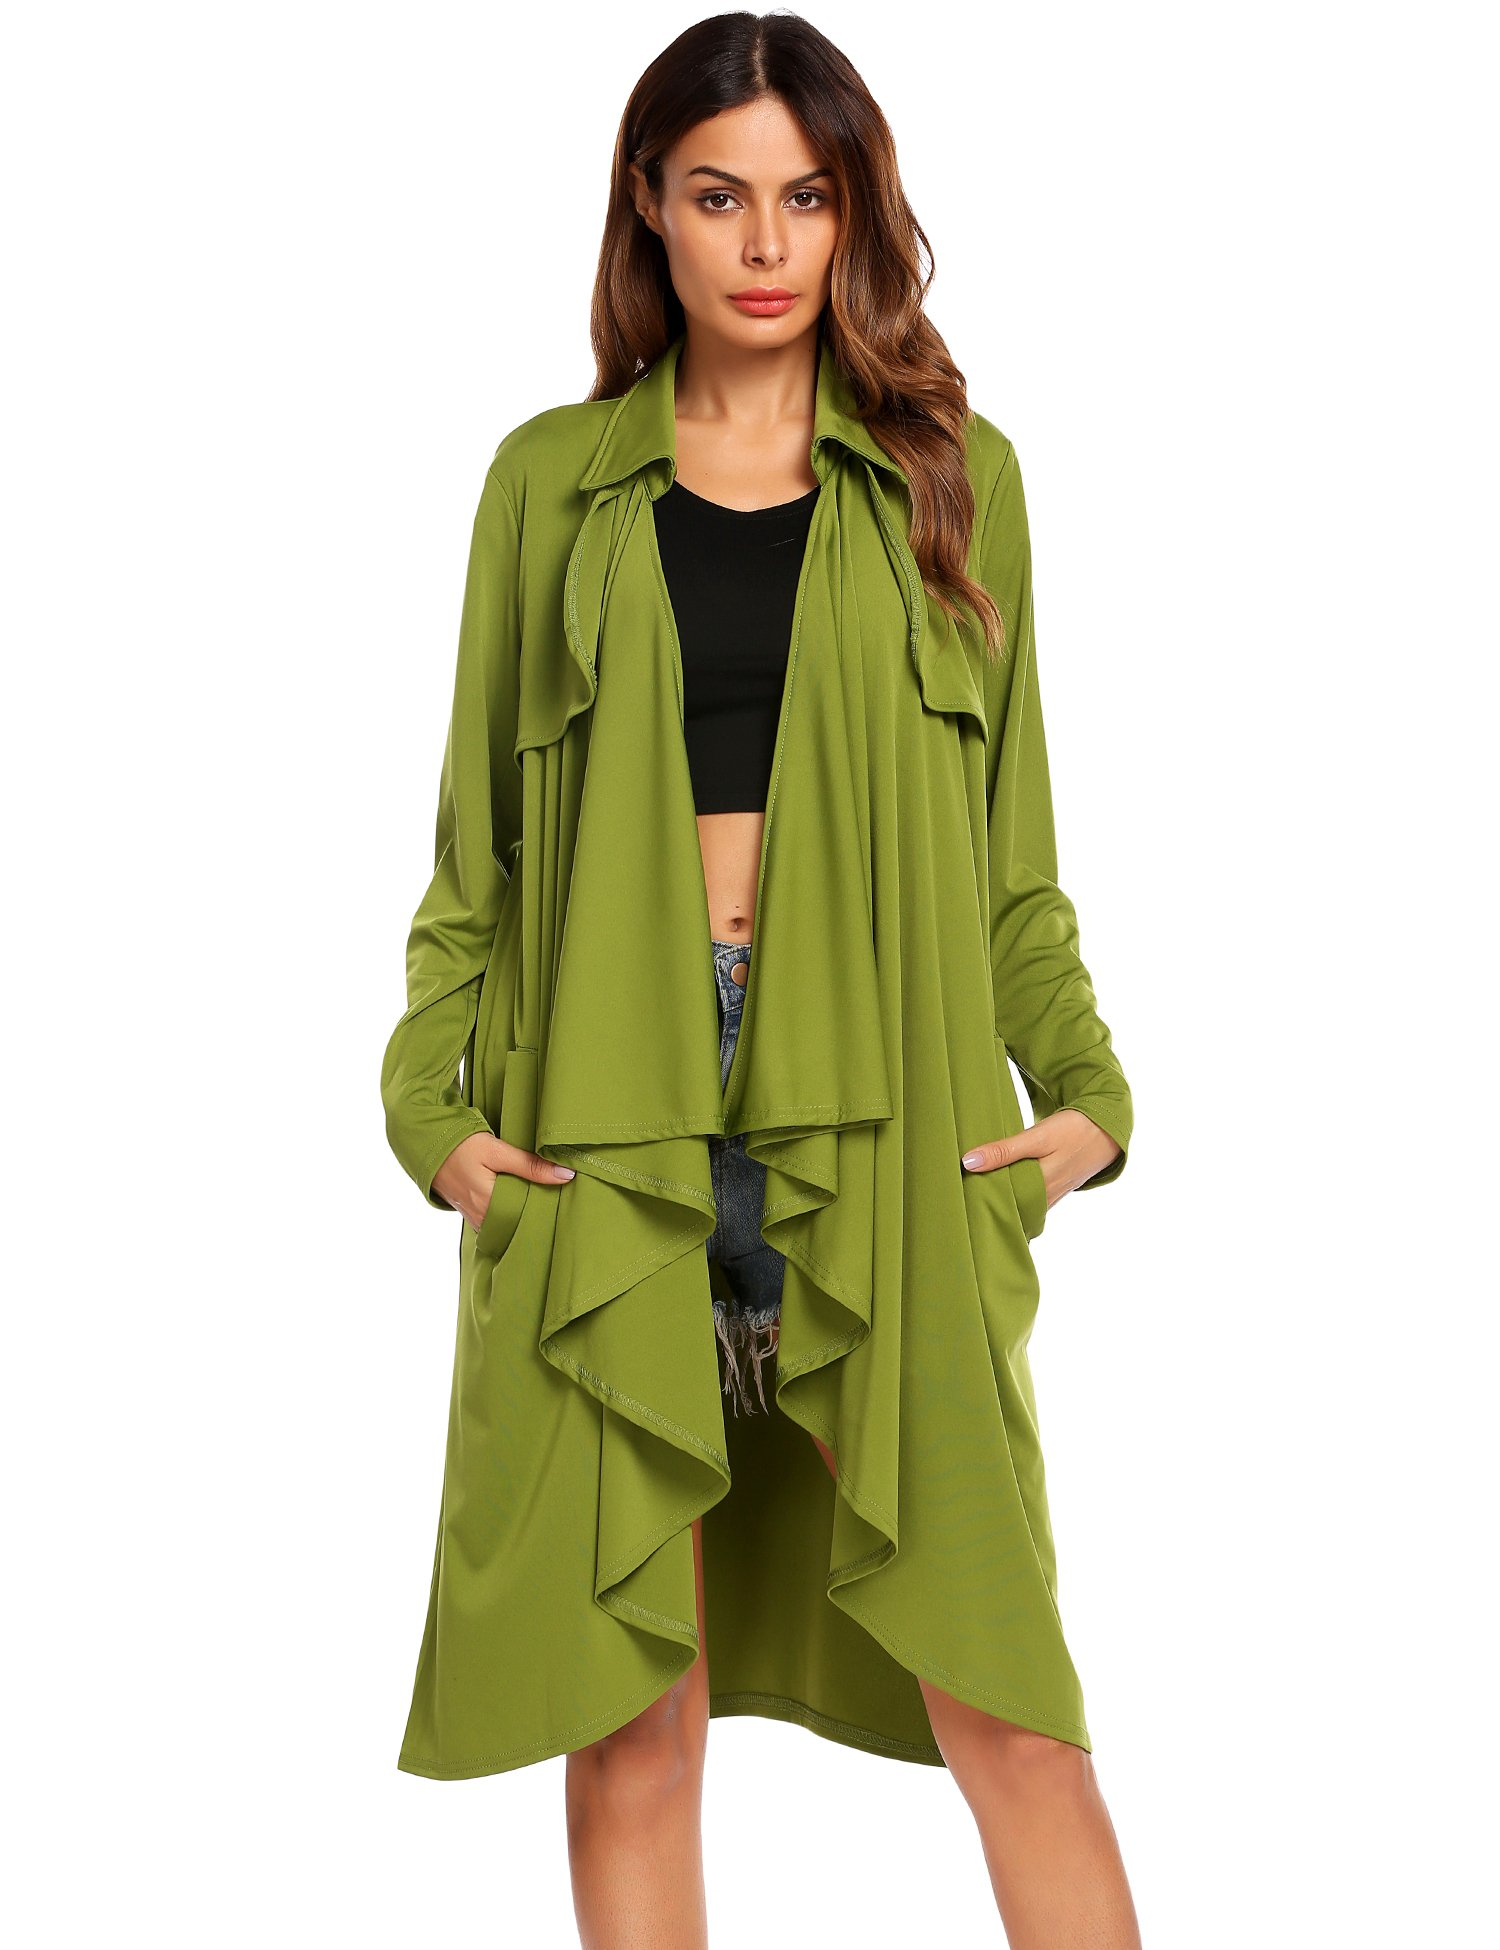 Showyoo Women Solid Lightweight Lapel Open Front Long Trench Coat Cardigan Army Green M